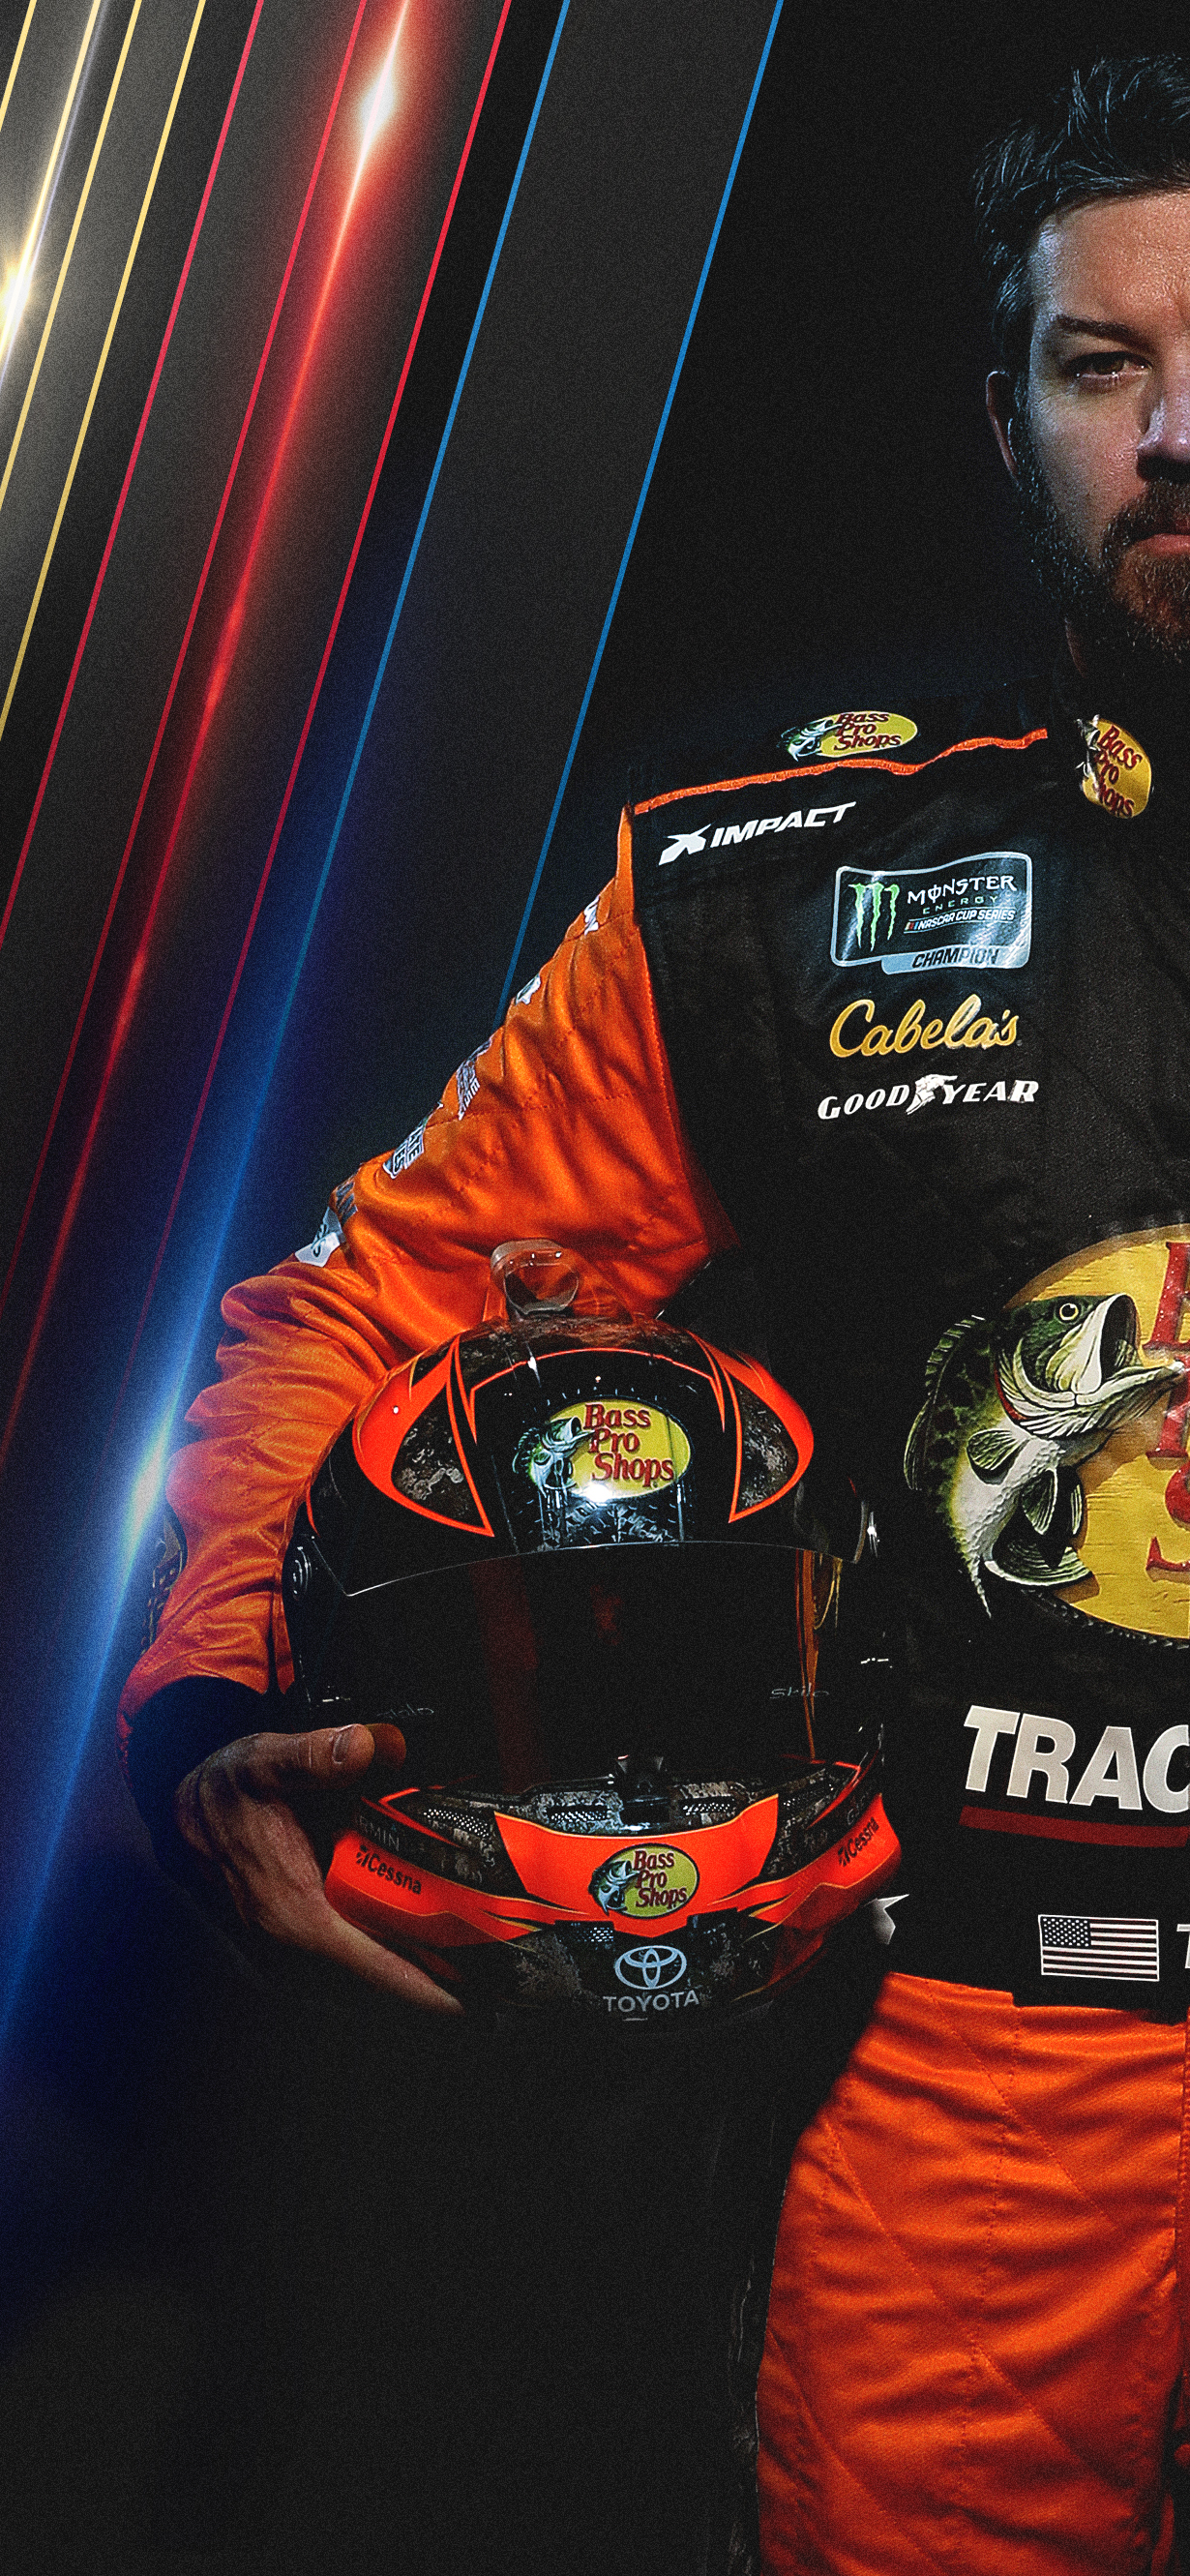 2019 NASCAR Wallpapers | Official Site Of NASCAR